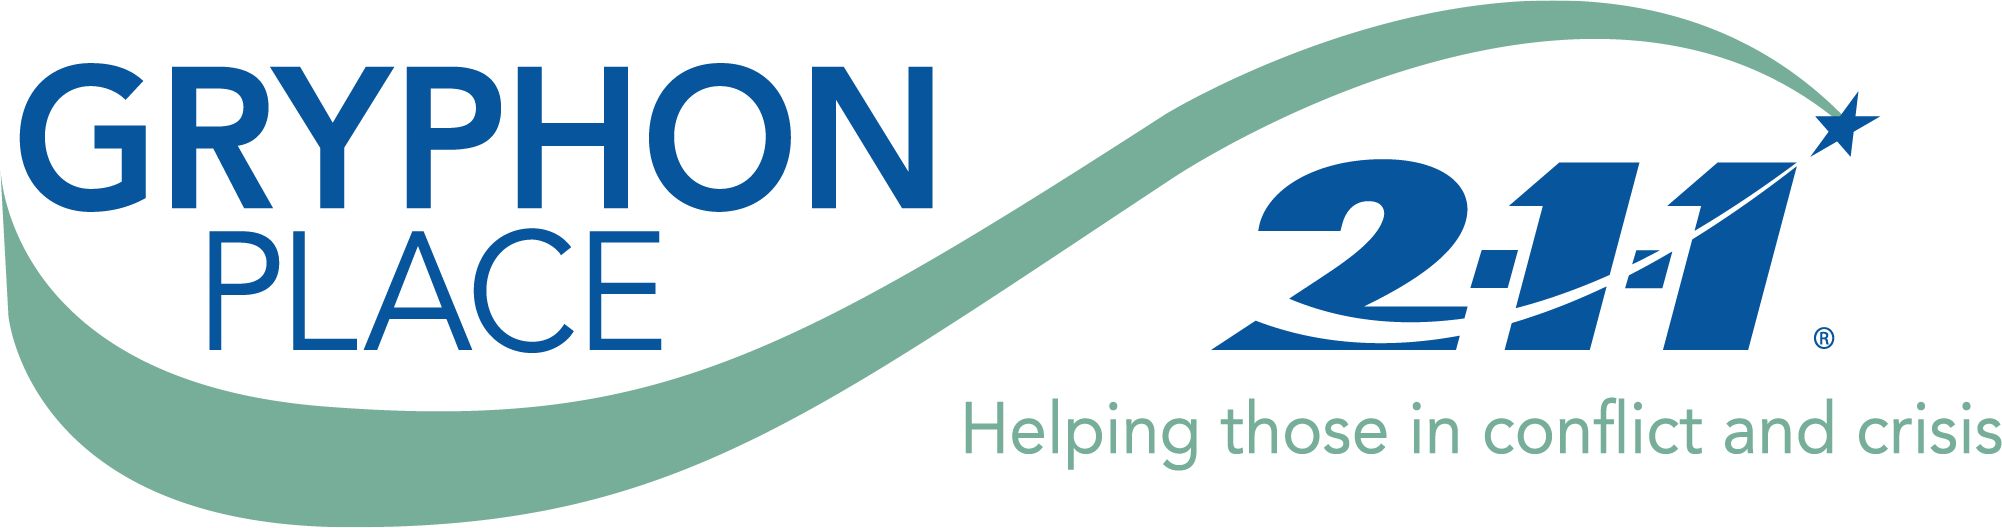 Gryphon Place 2 1 1 logo in blue and green